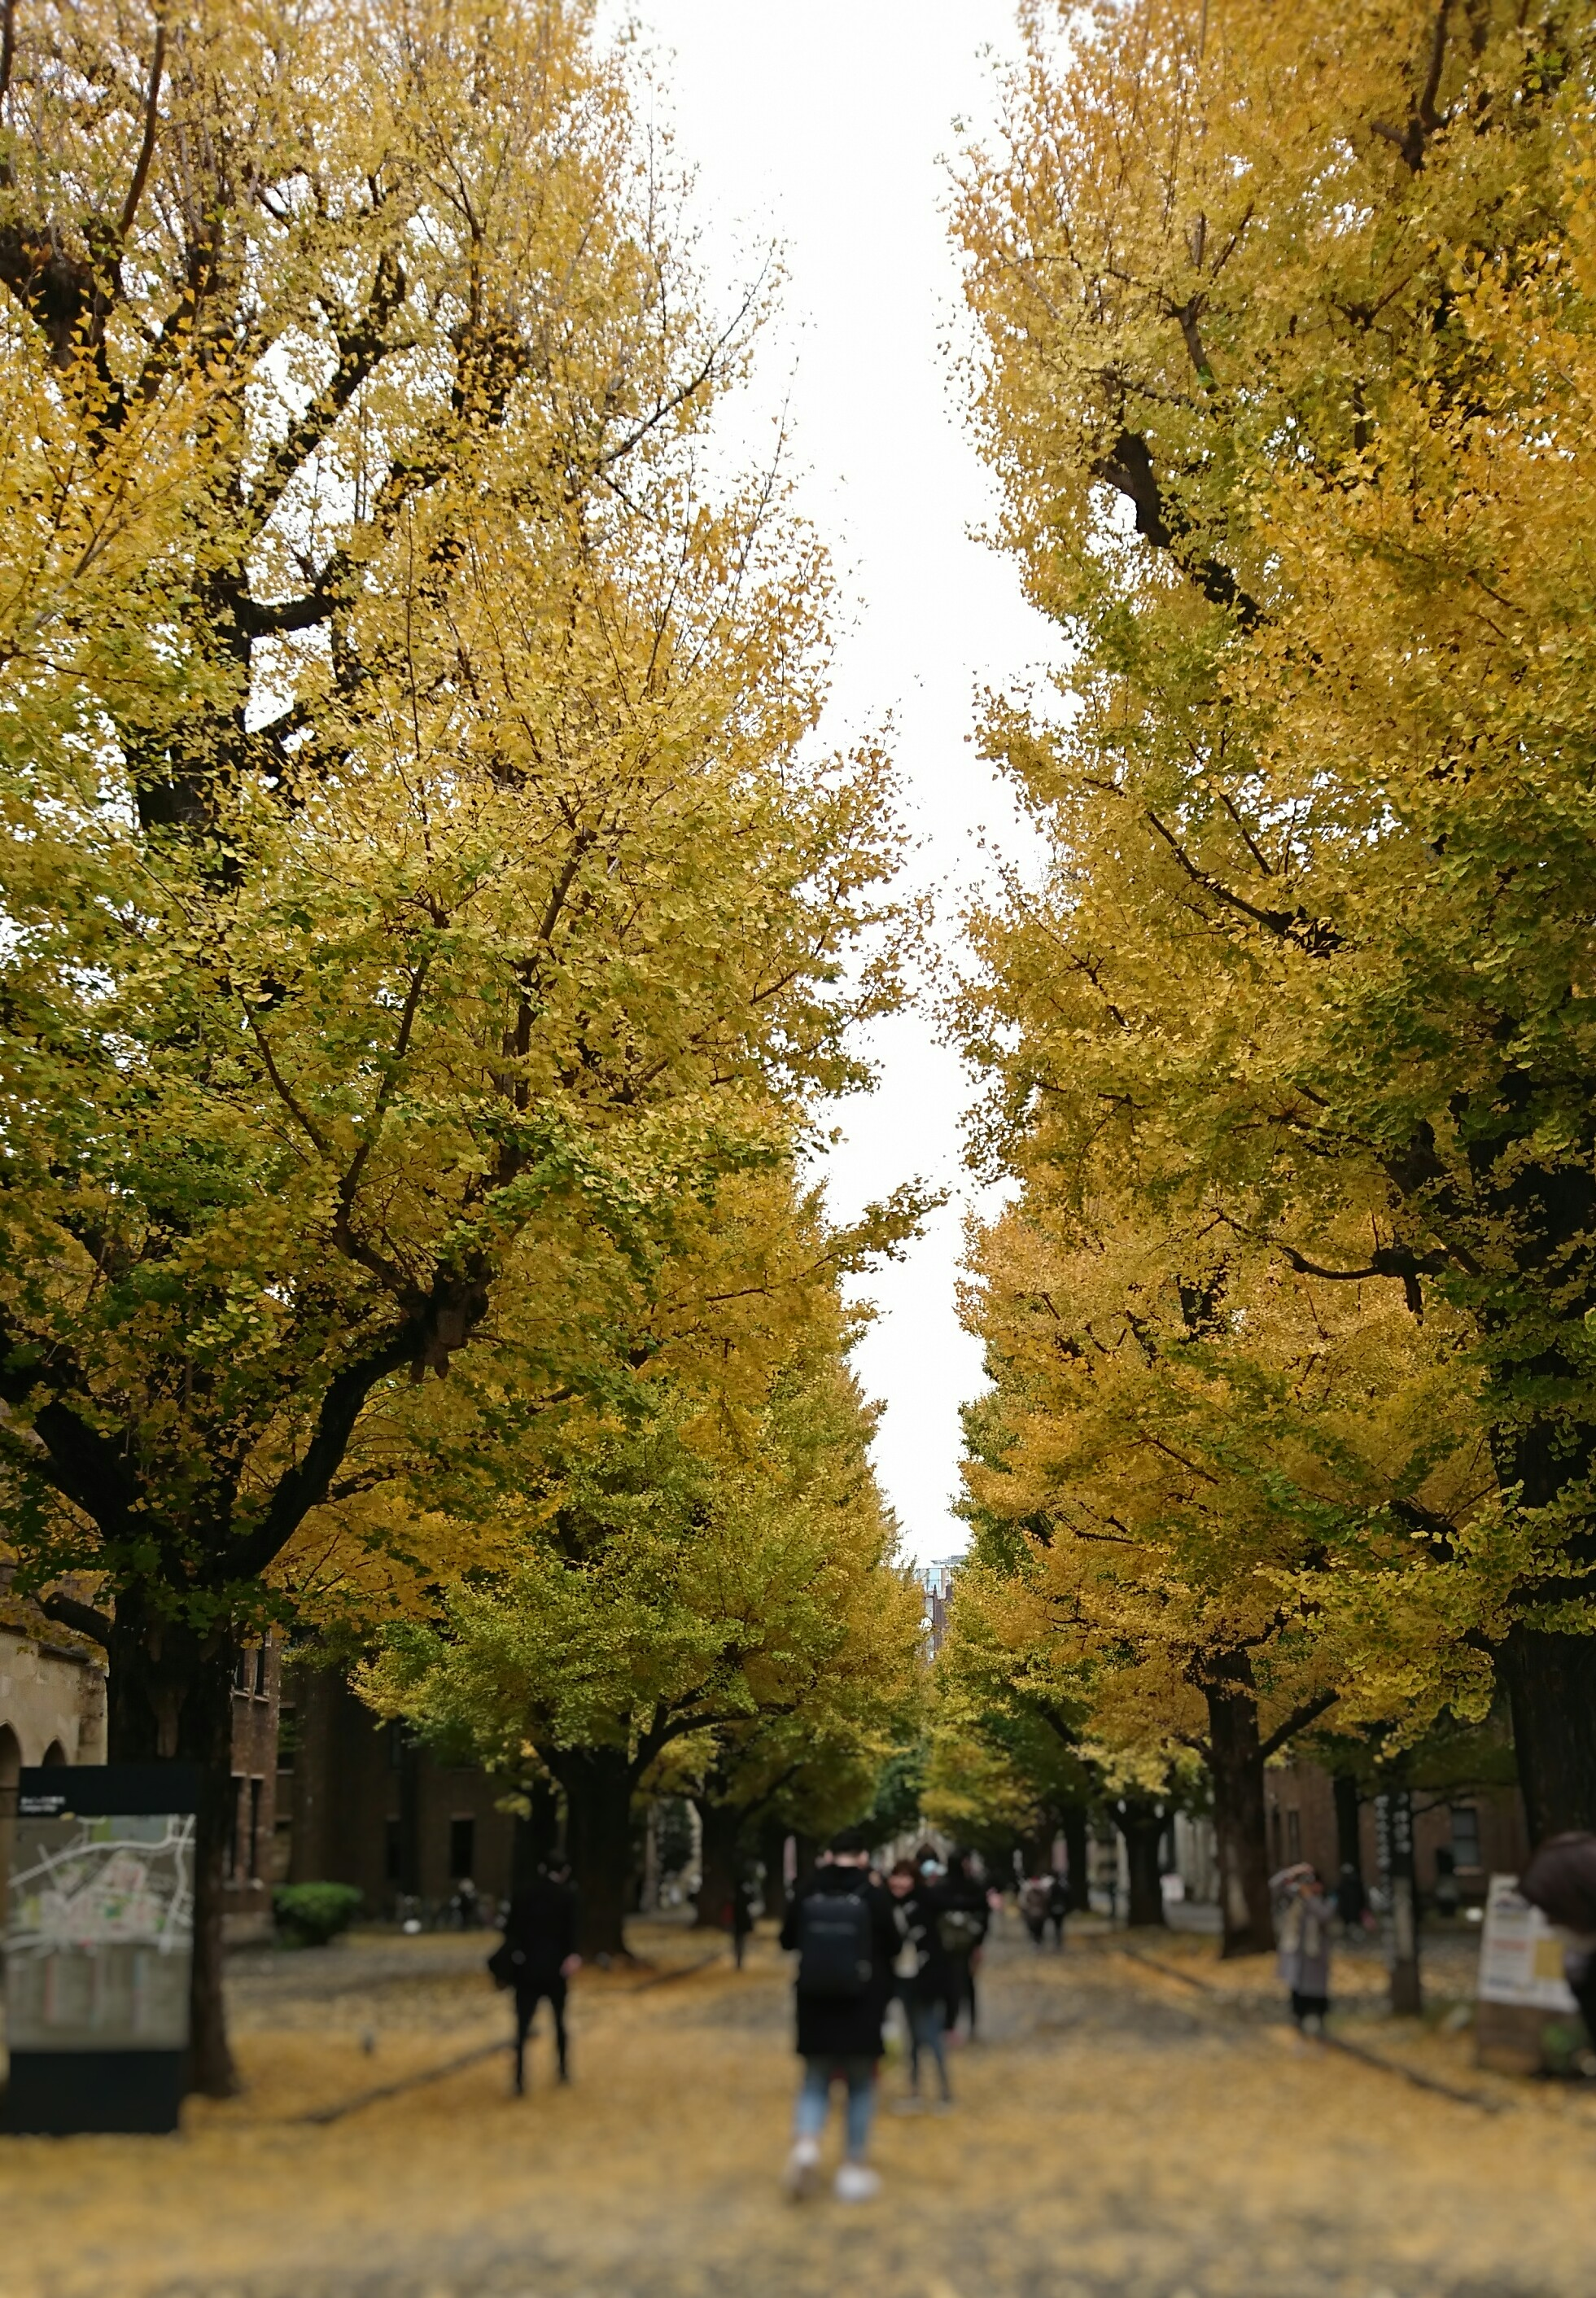 autumn foliage in the University of Tokyo